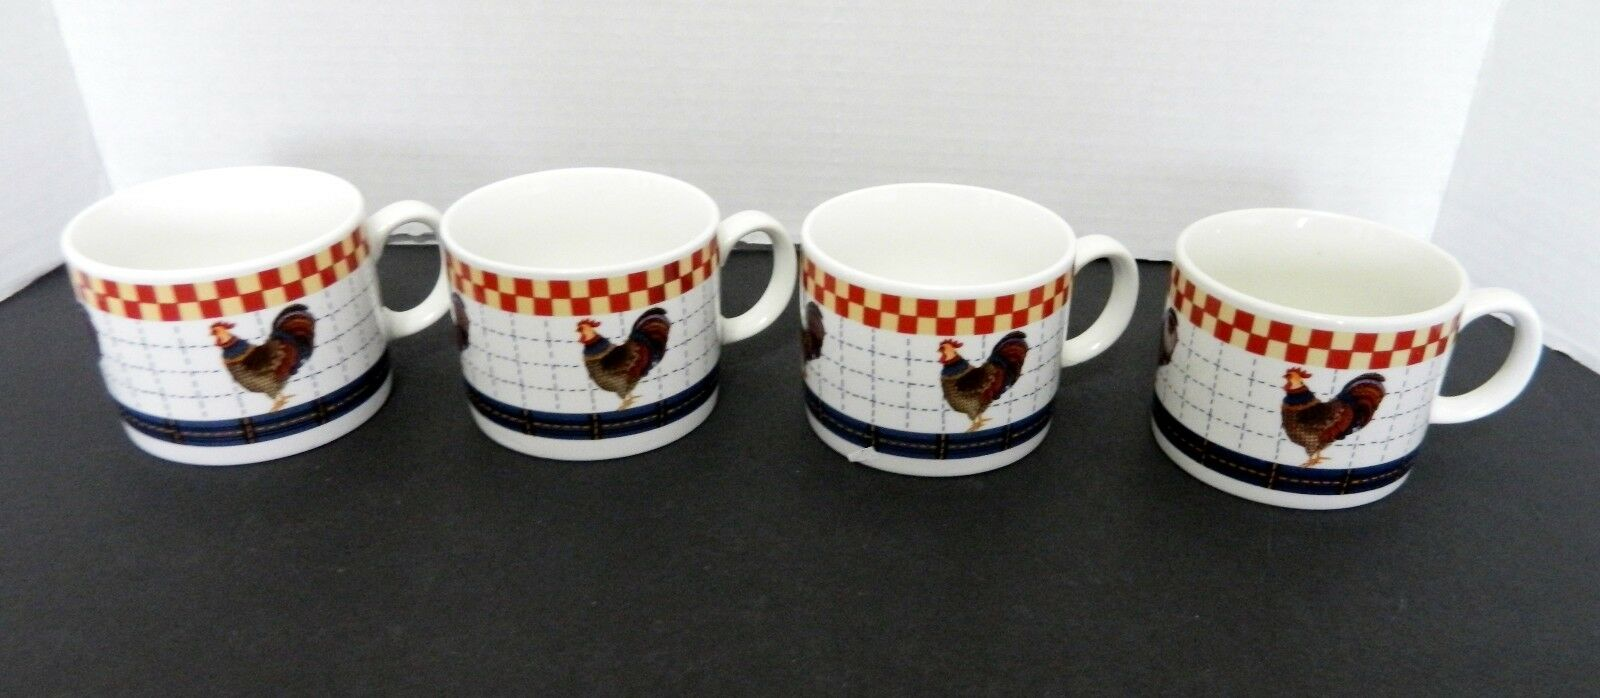 Majesticware By Oneida Calico Rooster Coffee Cups Mugs Country Folk Art Four For Sale Online